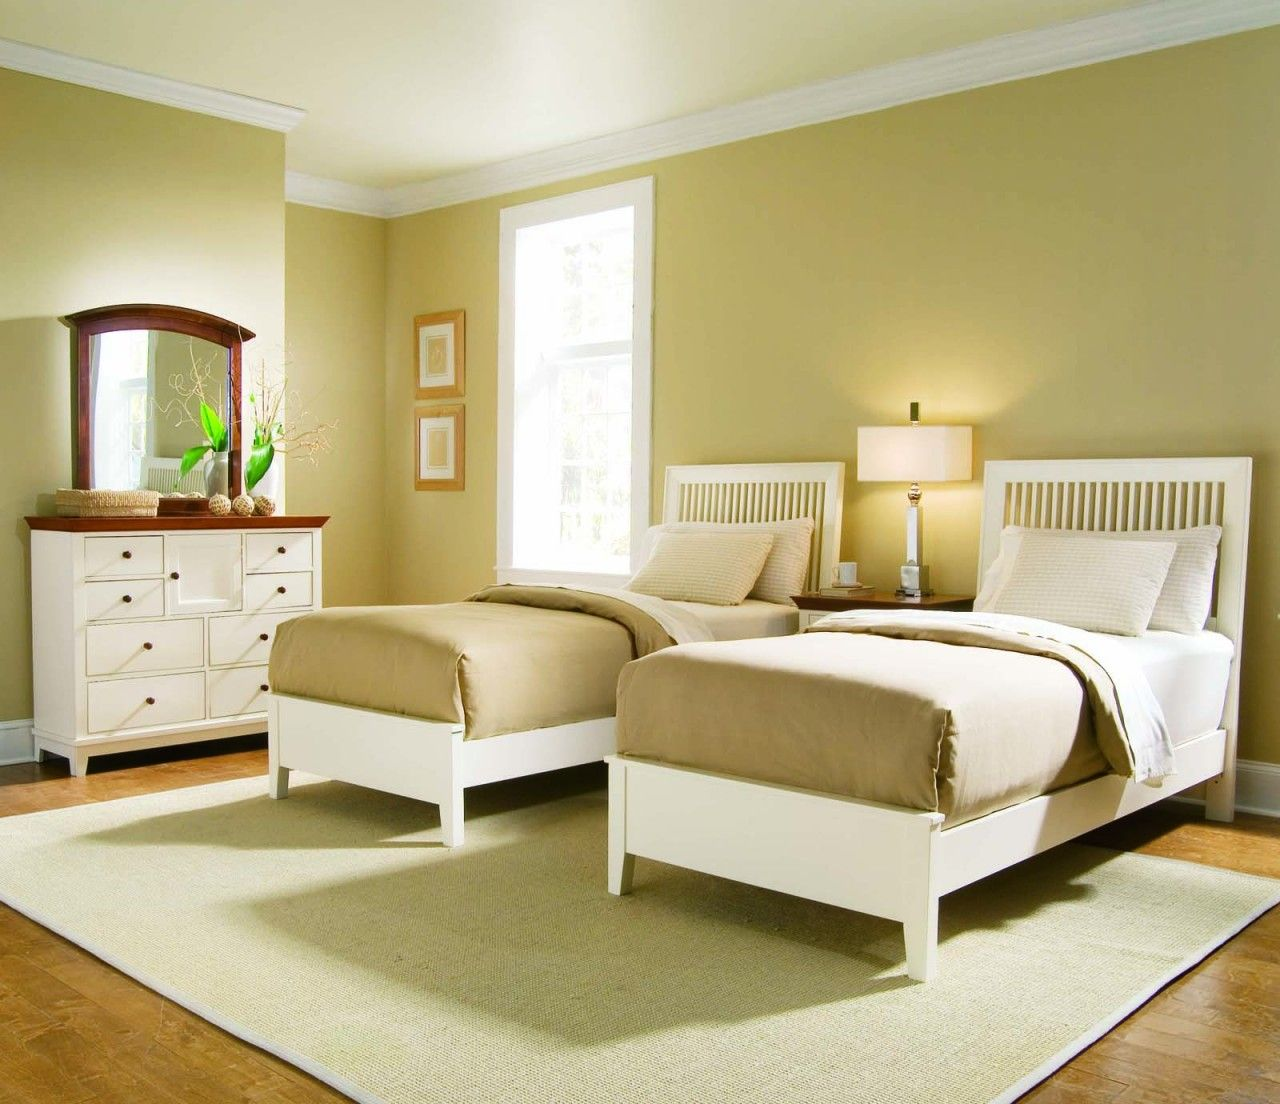 Two Bedroom Set Simple Twin Bedroom Set Idea For Girls With Golden Brown